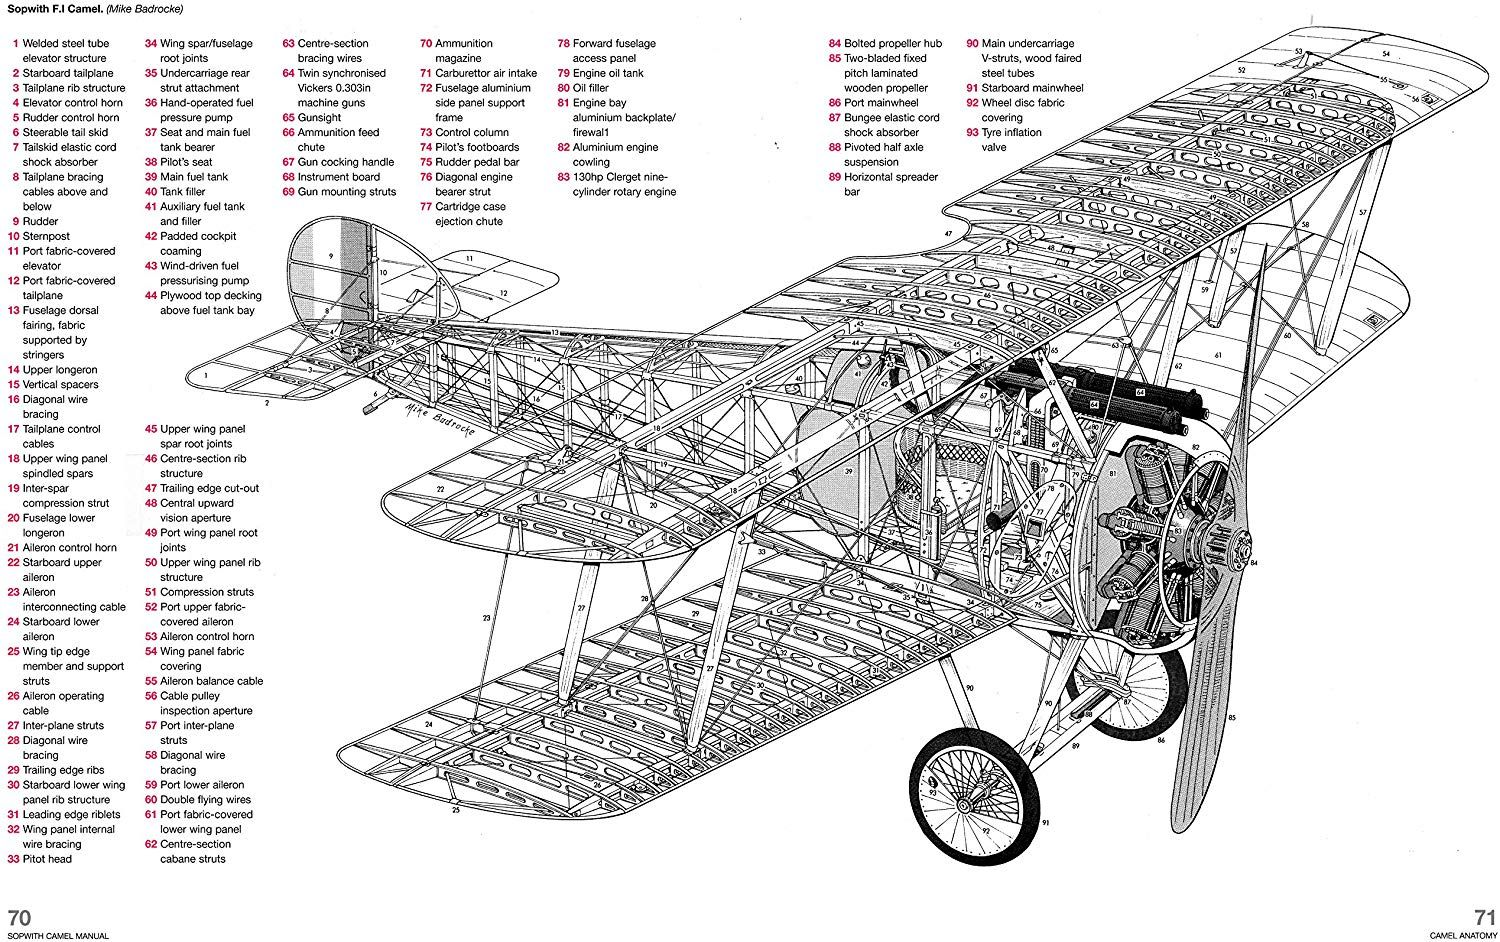 Sopwith Camel Manual: Models F.1/2F.1 (Owners' Workshop